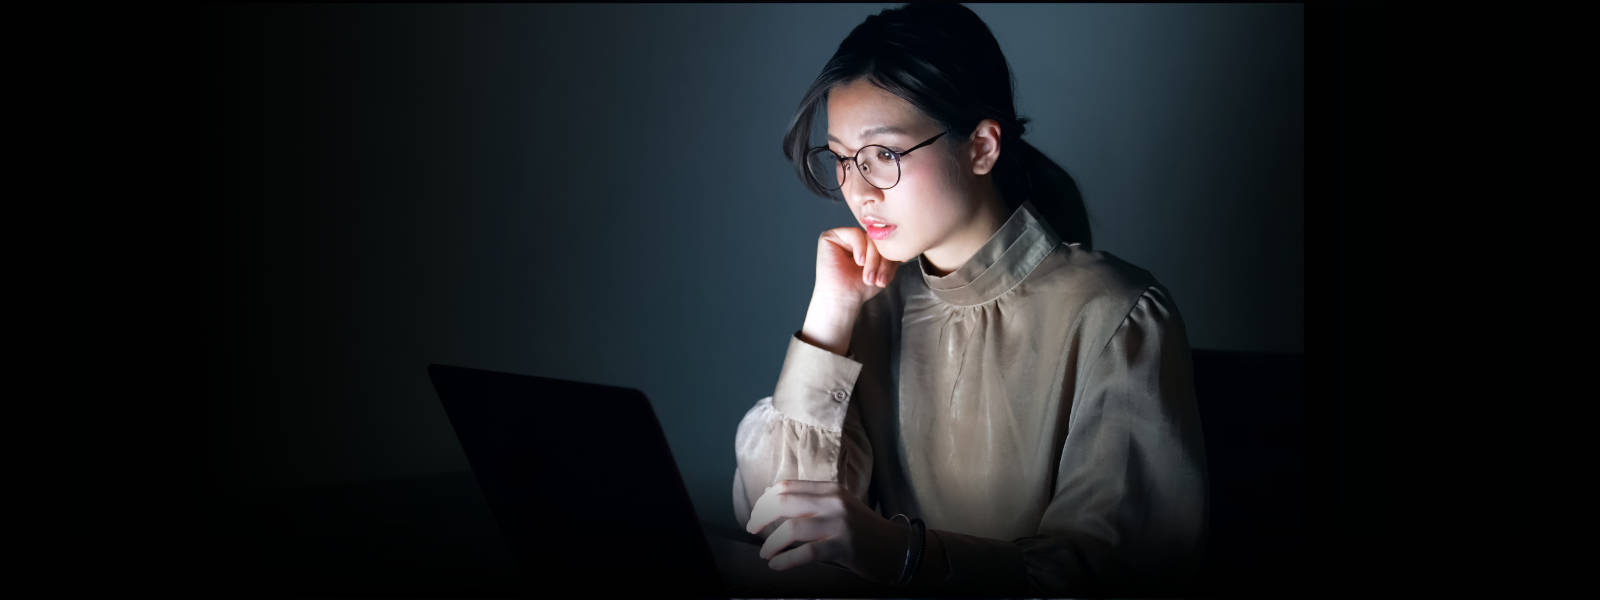 Business woman wearing glasses and checking email on a laptop